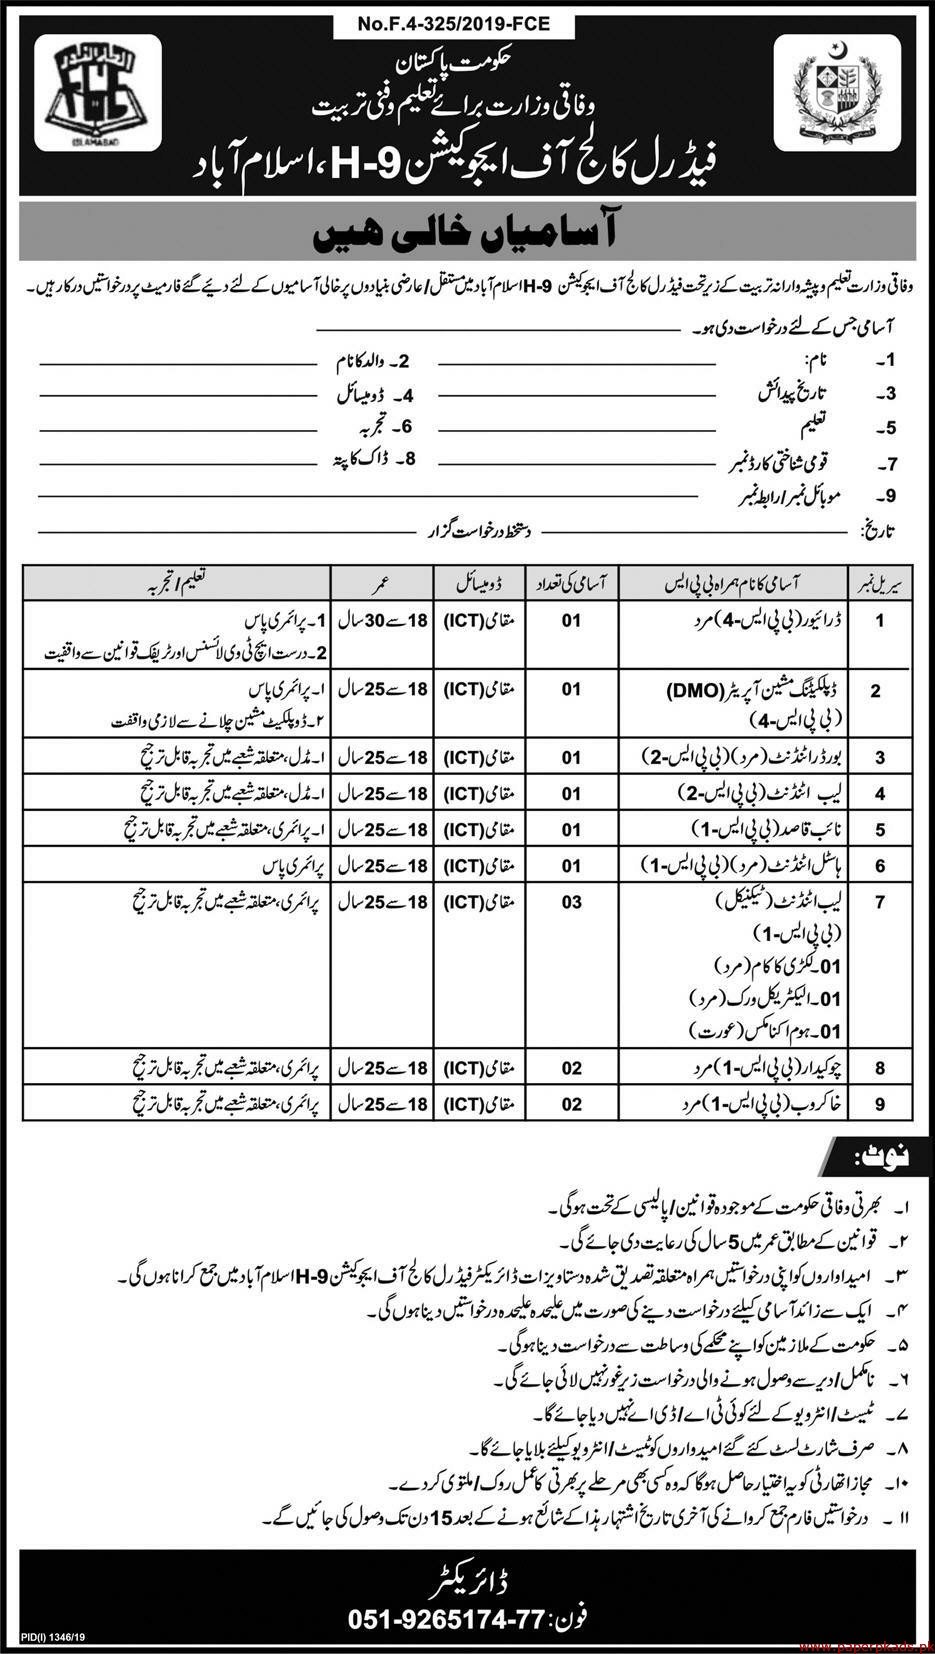 Ministry of Education Government of Pakistan Jobs 2019 Latest